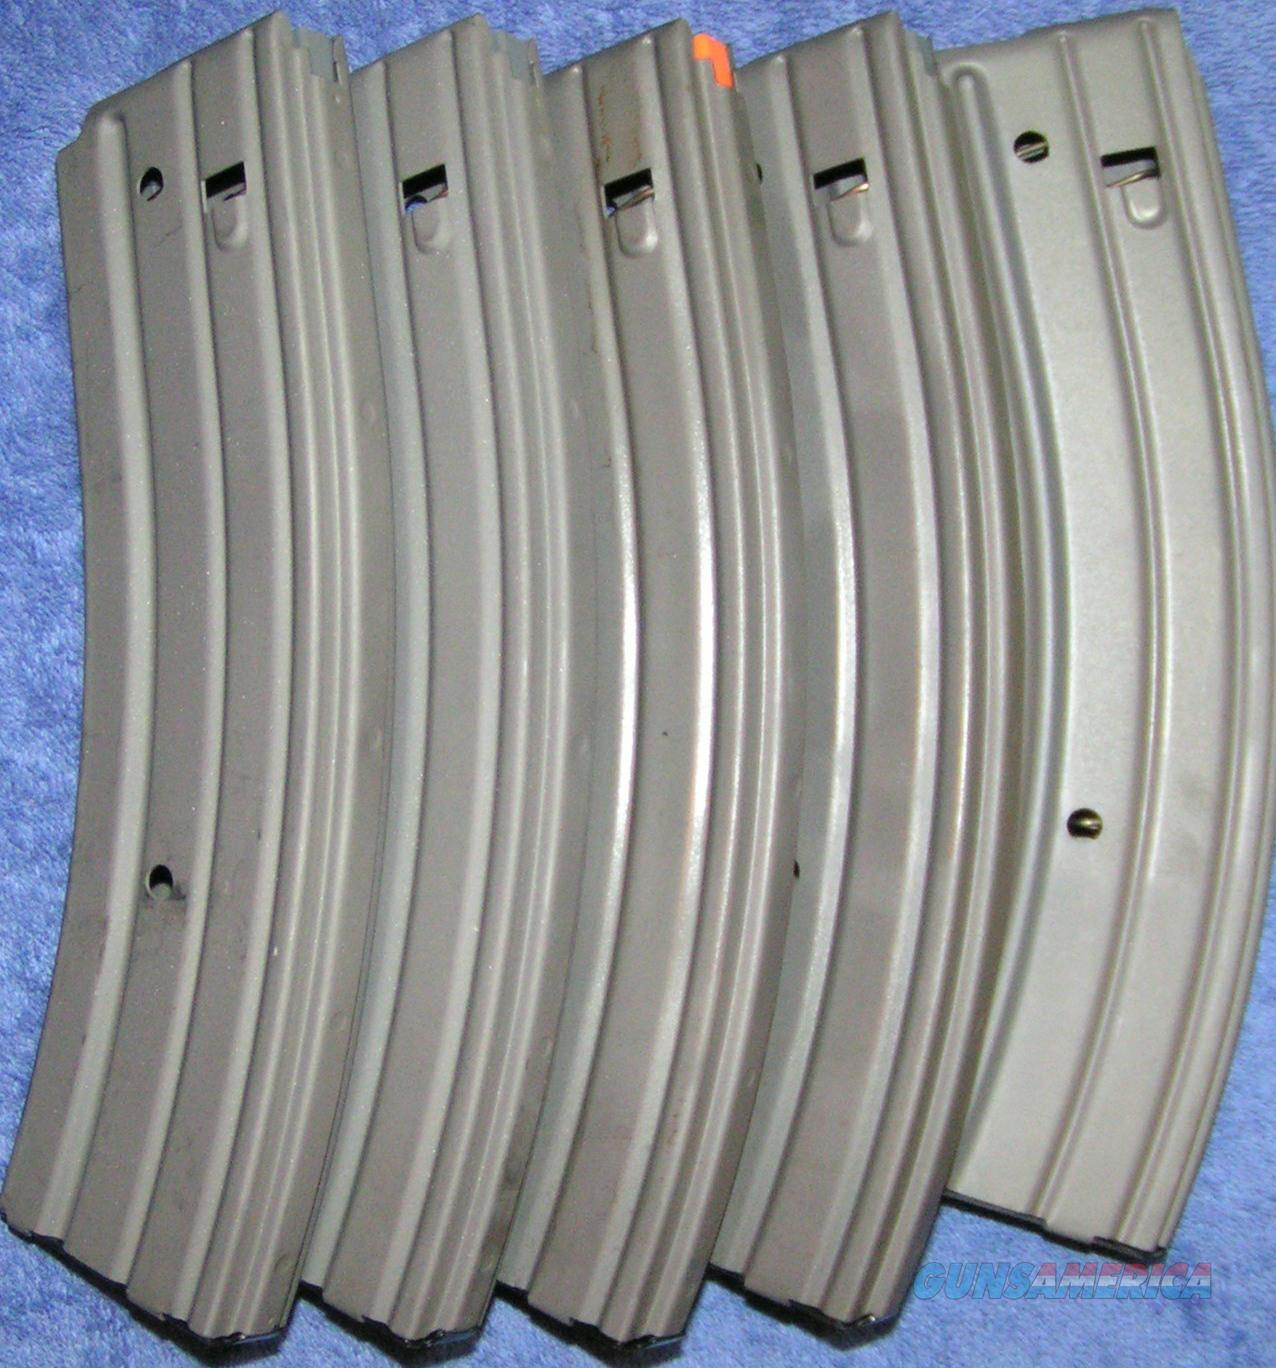 5 AR15 mags by C. Daly. 40rd steel body. Free shipping  Non-Guns > Magazines & Clips > Rifle Magazines > AR-15 Type